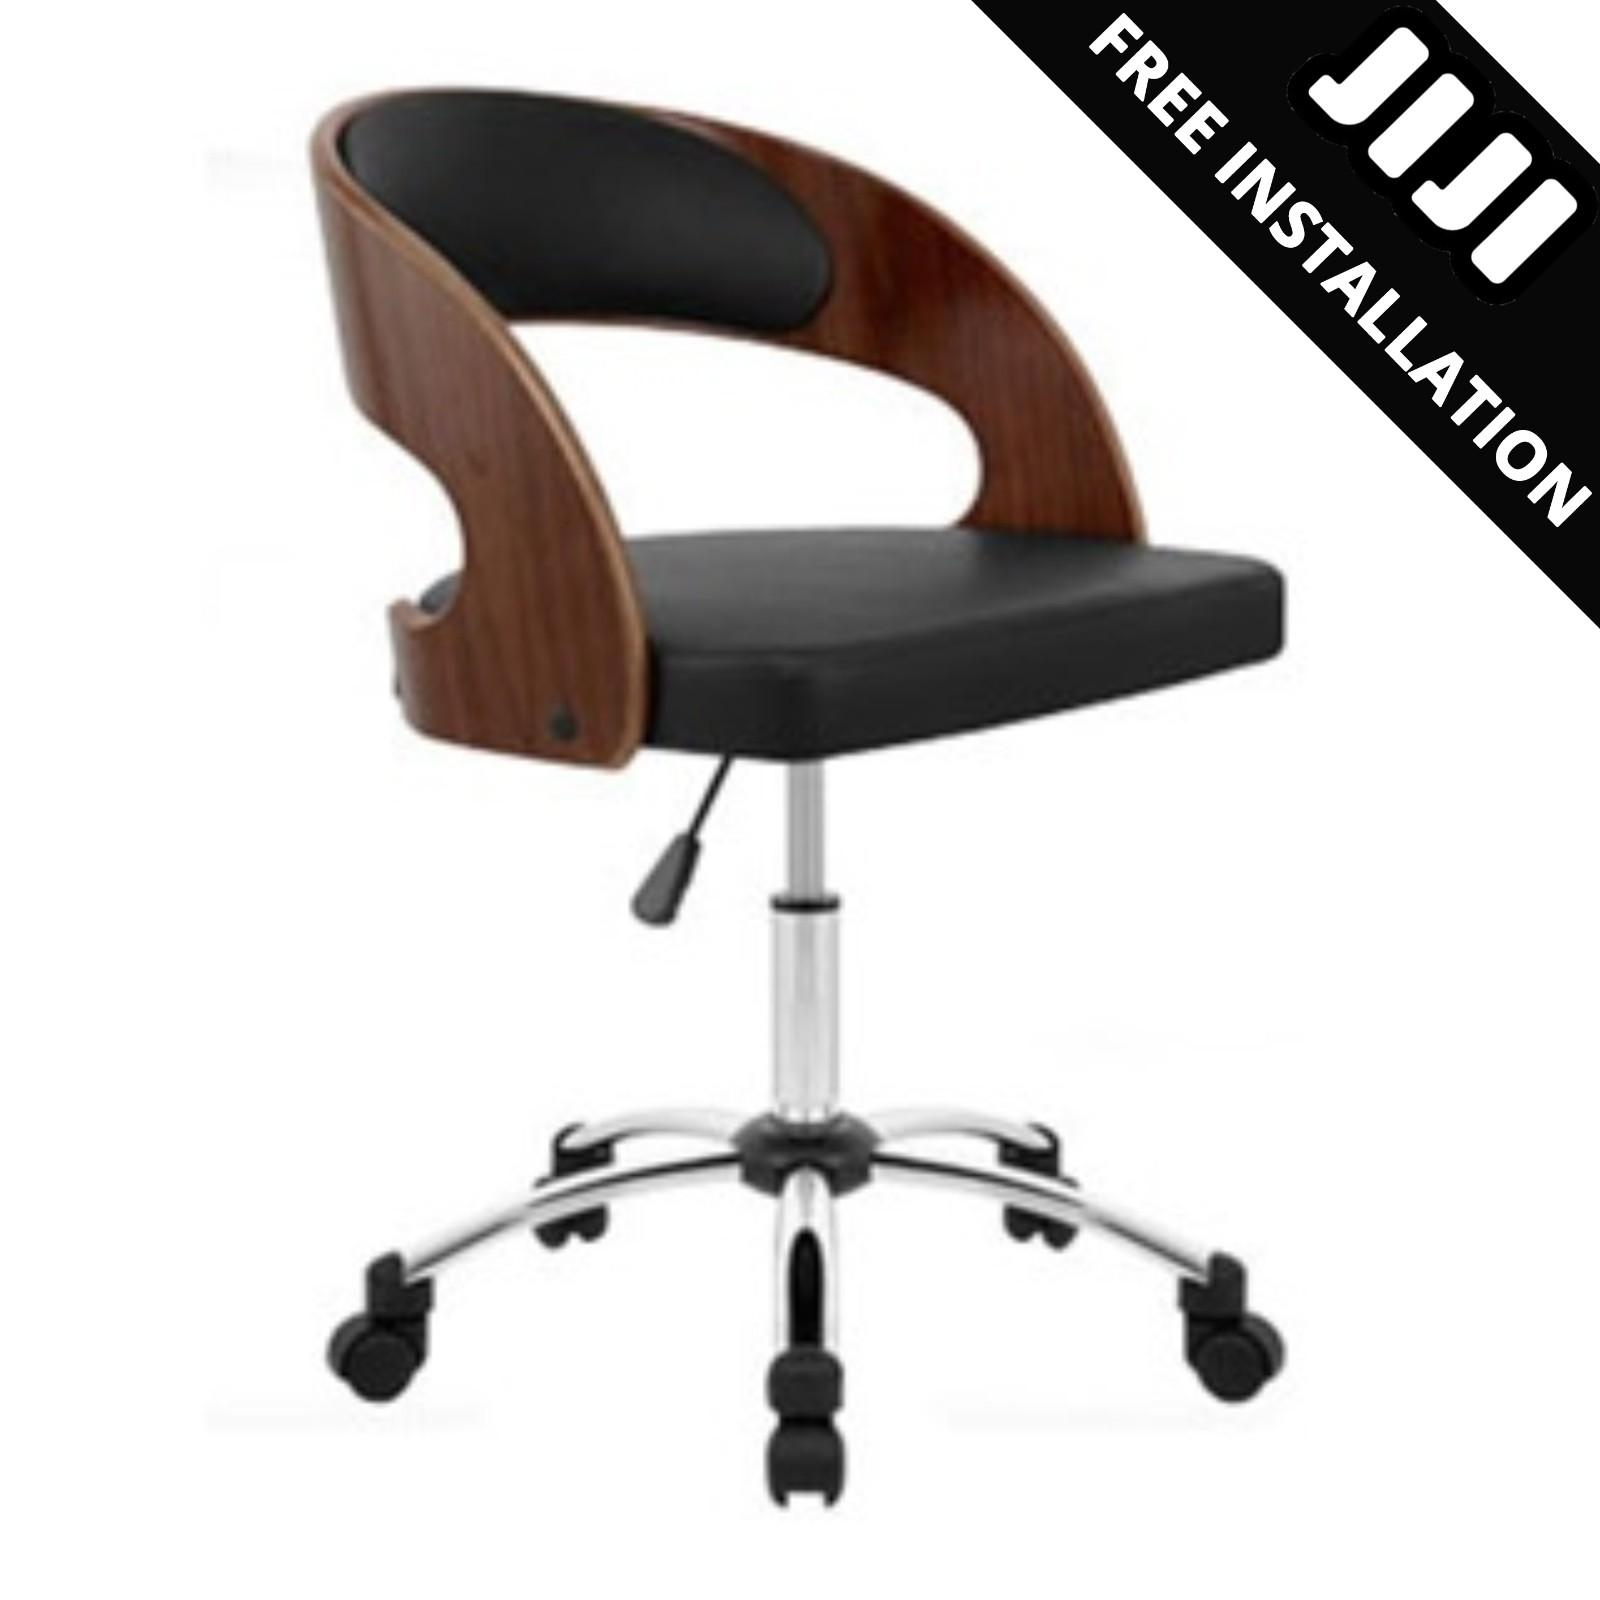 JIJI Office Altair Chair (Free Installation) - Office chair/Study chair/Gaming chair/Ergonomic/ Free 12 Months Warranty (SG) Singapore